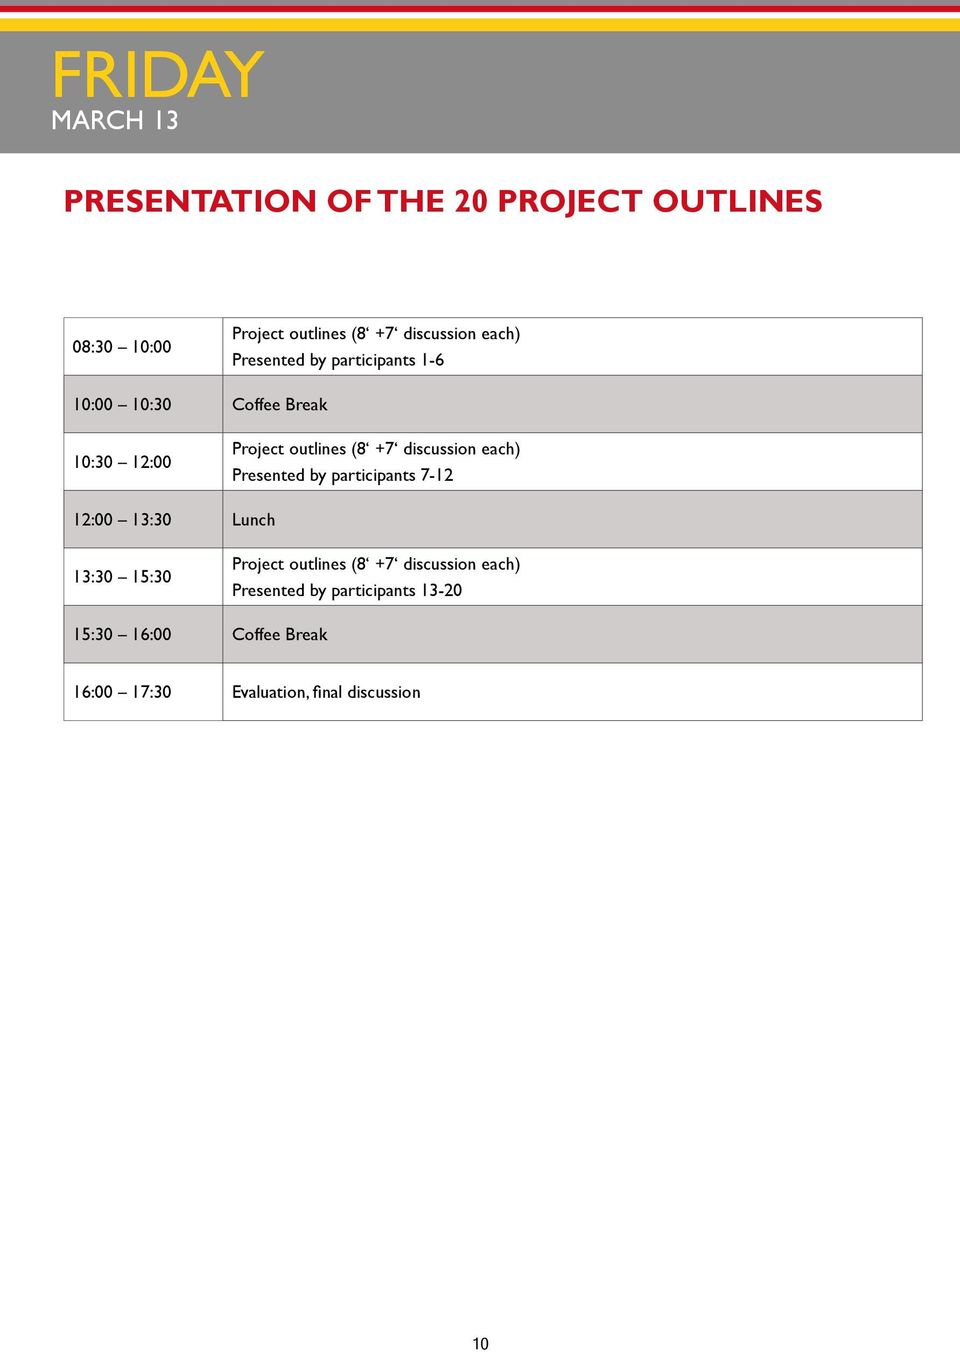 discussion each) Presented by participants 7-12 12:00 13:30 Lunch 13:30 15:30 Project outlines (8 +7